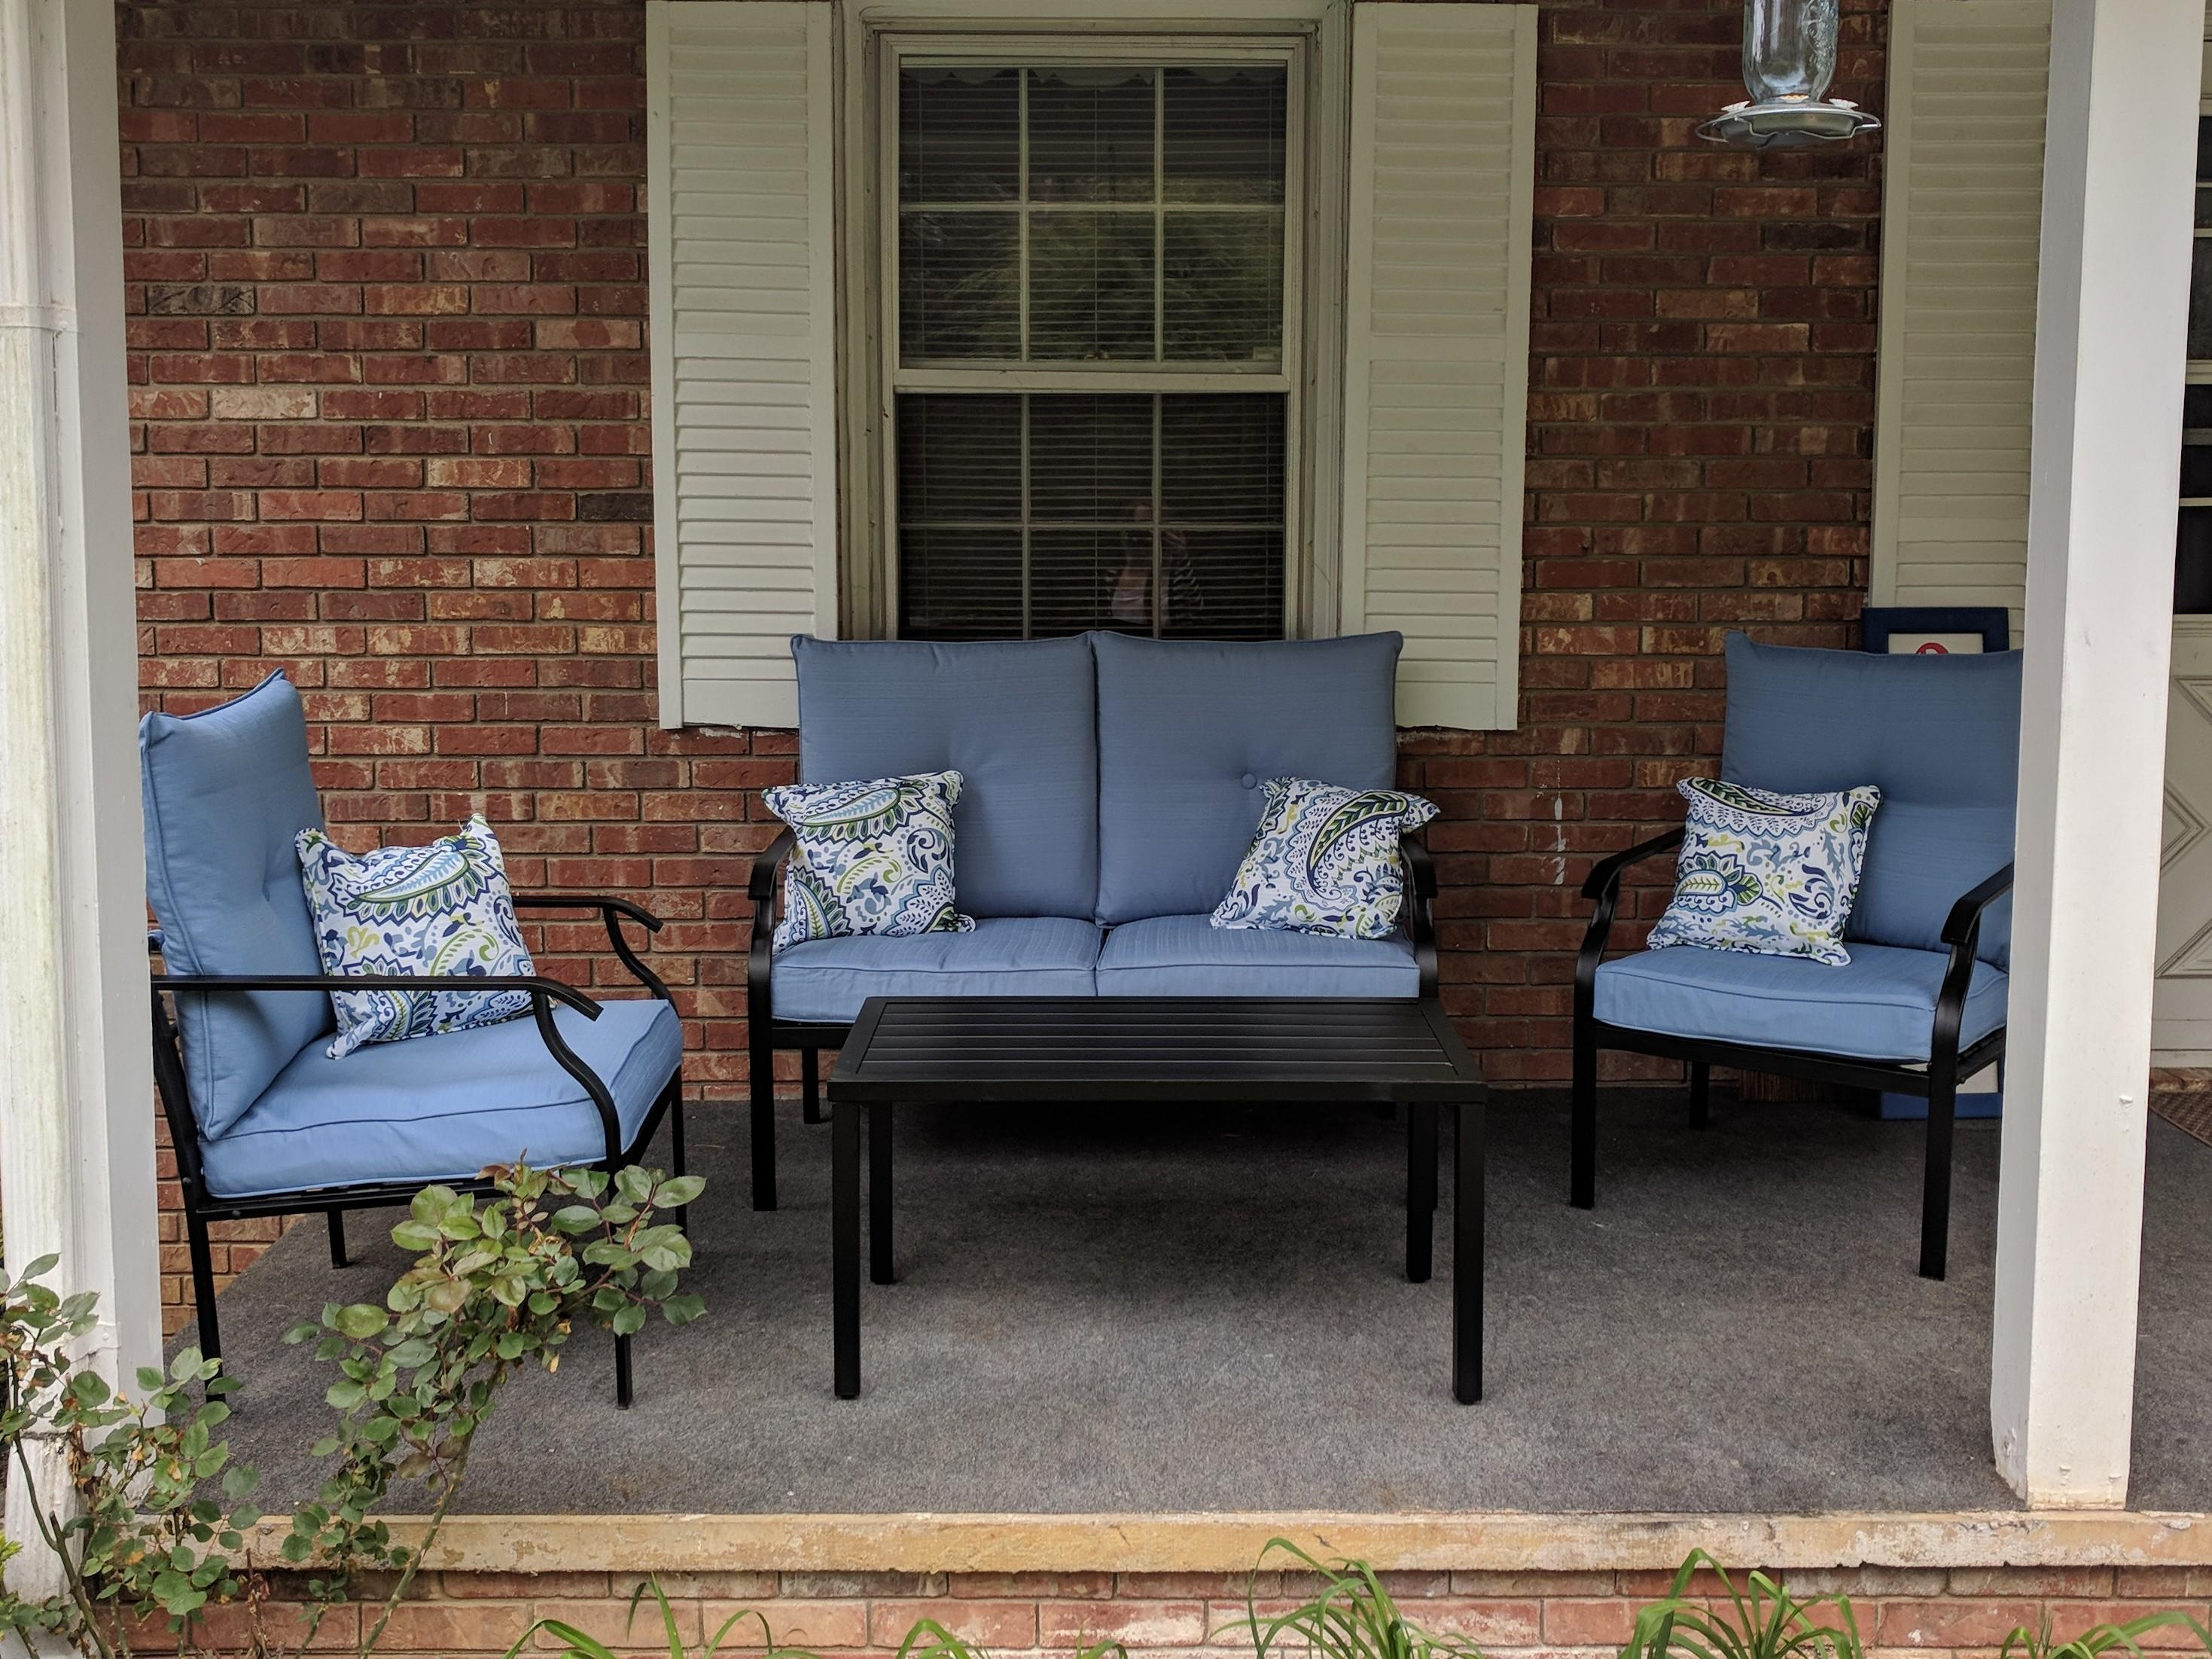 i bought this patio set last wednesday